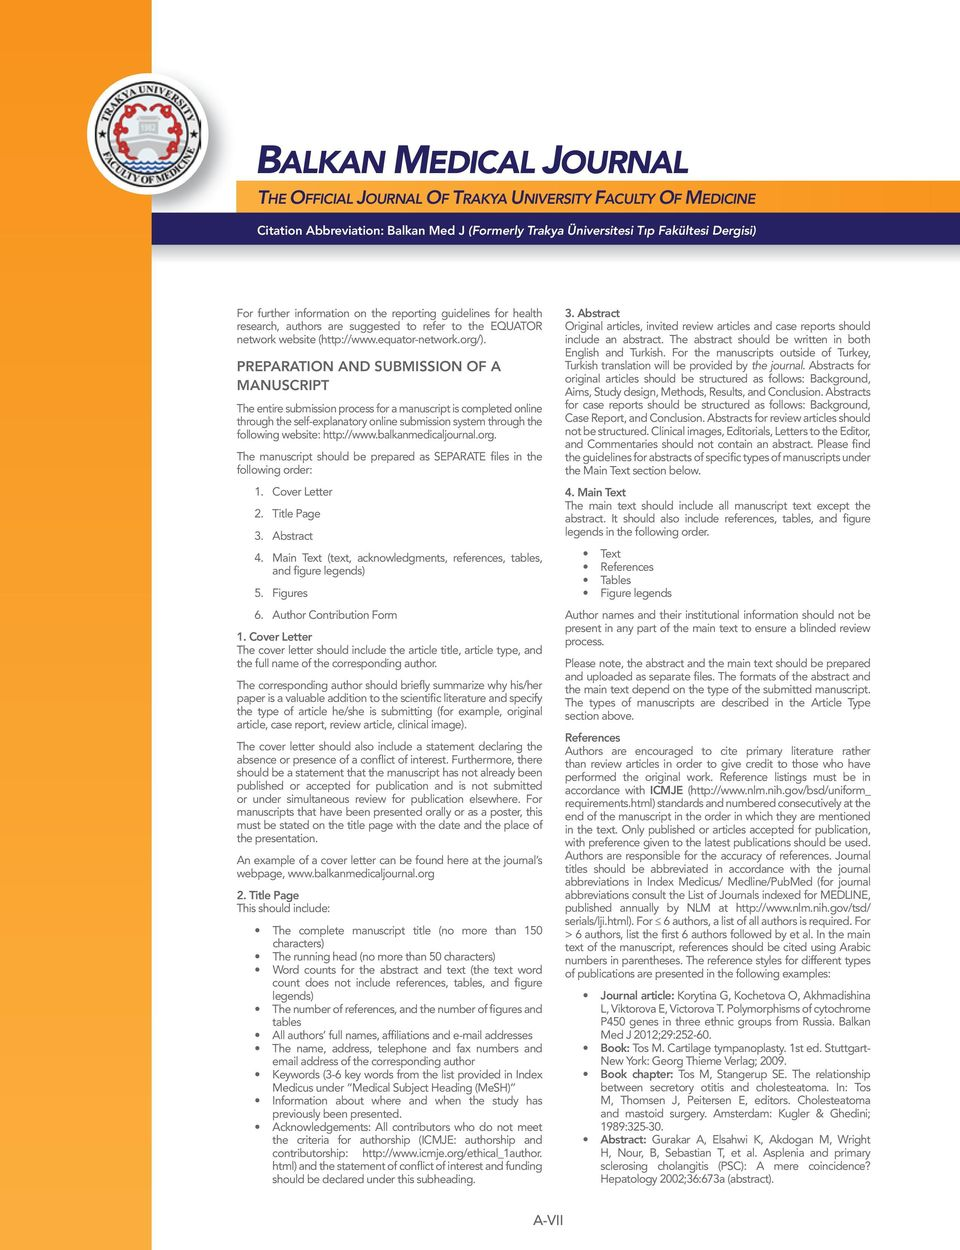 http://www.balkanmedicaljournal.org. The manuscript should be prepared as SEPARATE files in the following order: 1. Cover Letter 2. Title Page 3. Abstract 4.